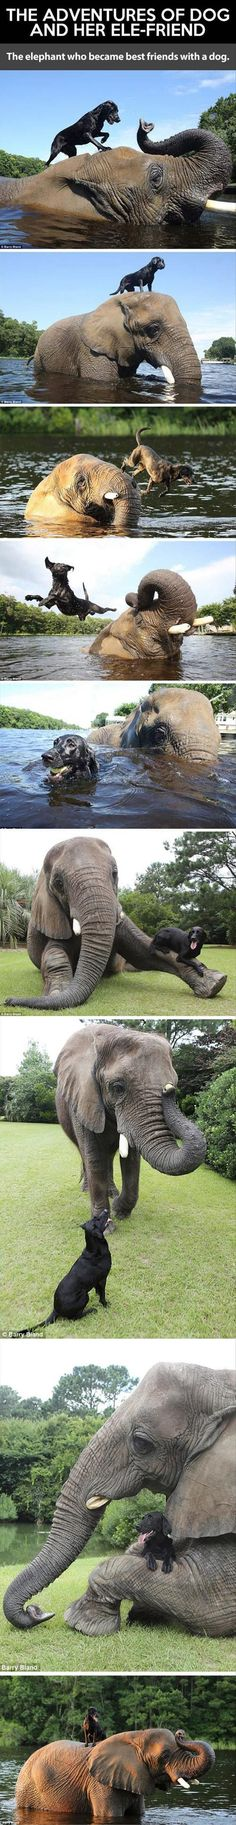 Elephant and Dog Friendship Pictures.. crying tears of joy